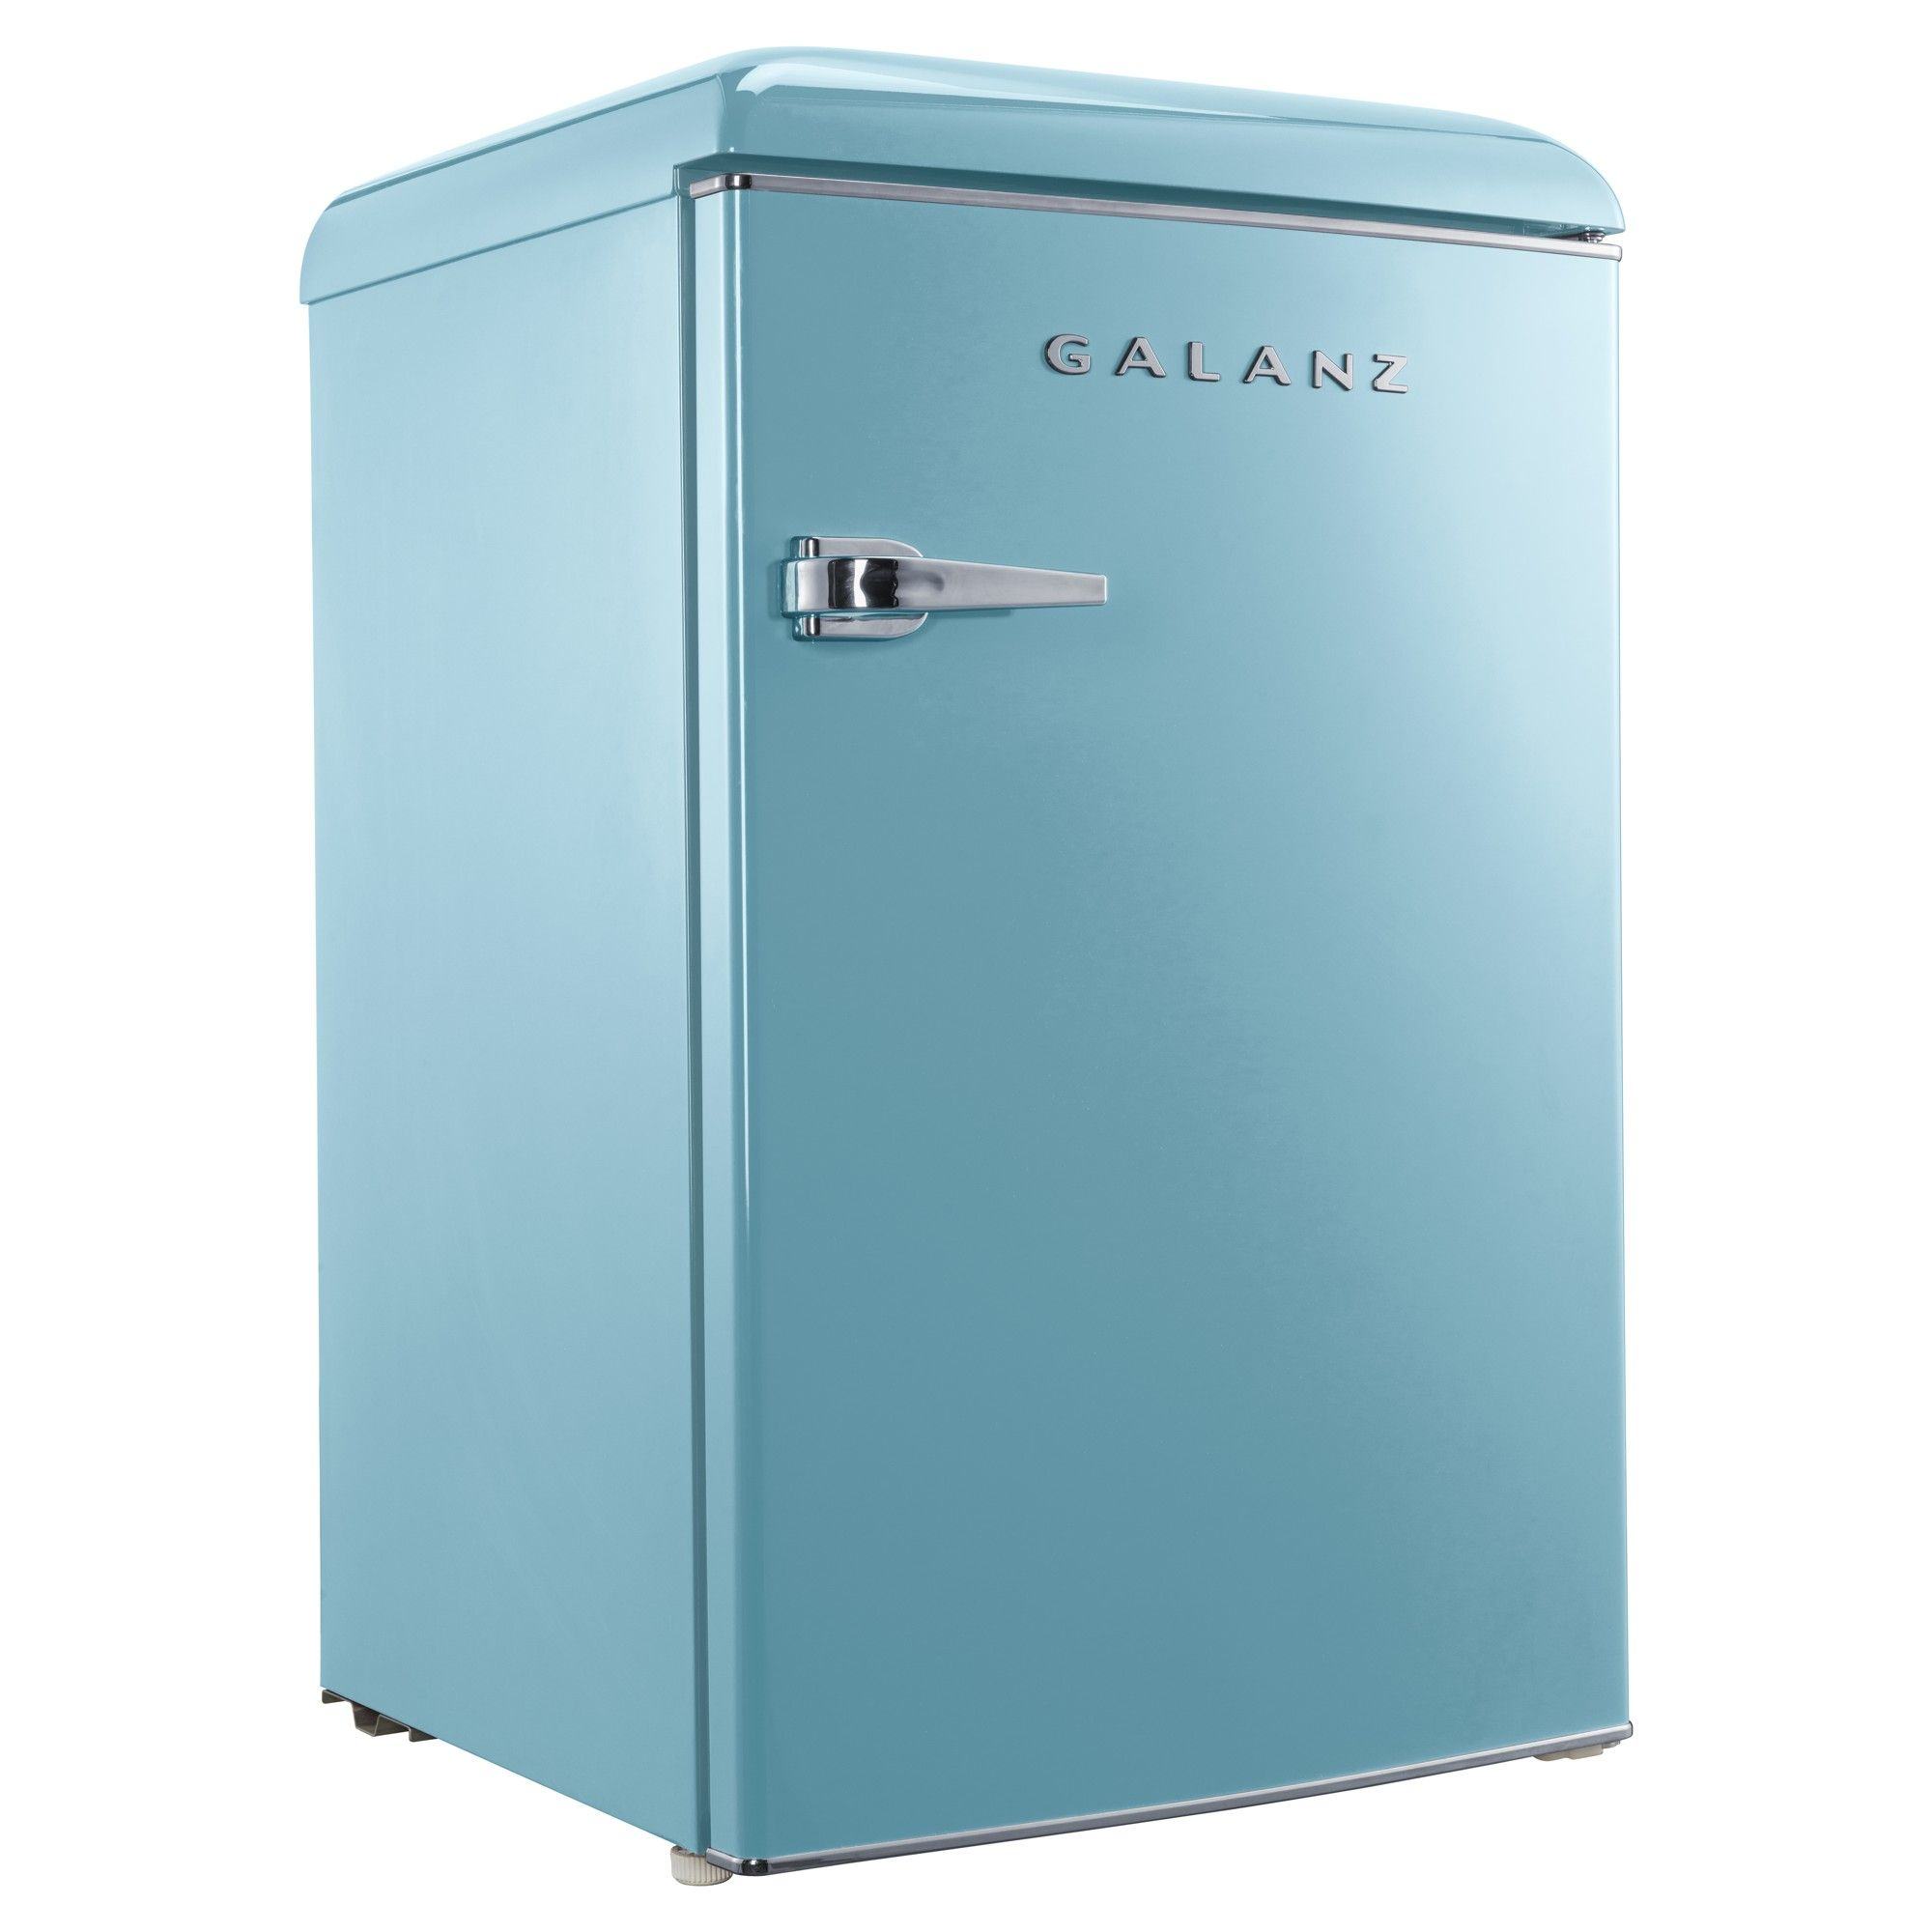 Galanz 4 4 Cu Ft Retro Mini Fridge Blue In 2020 Retro